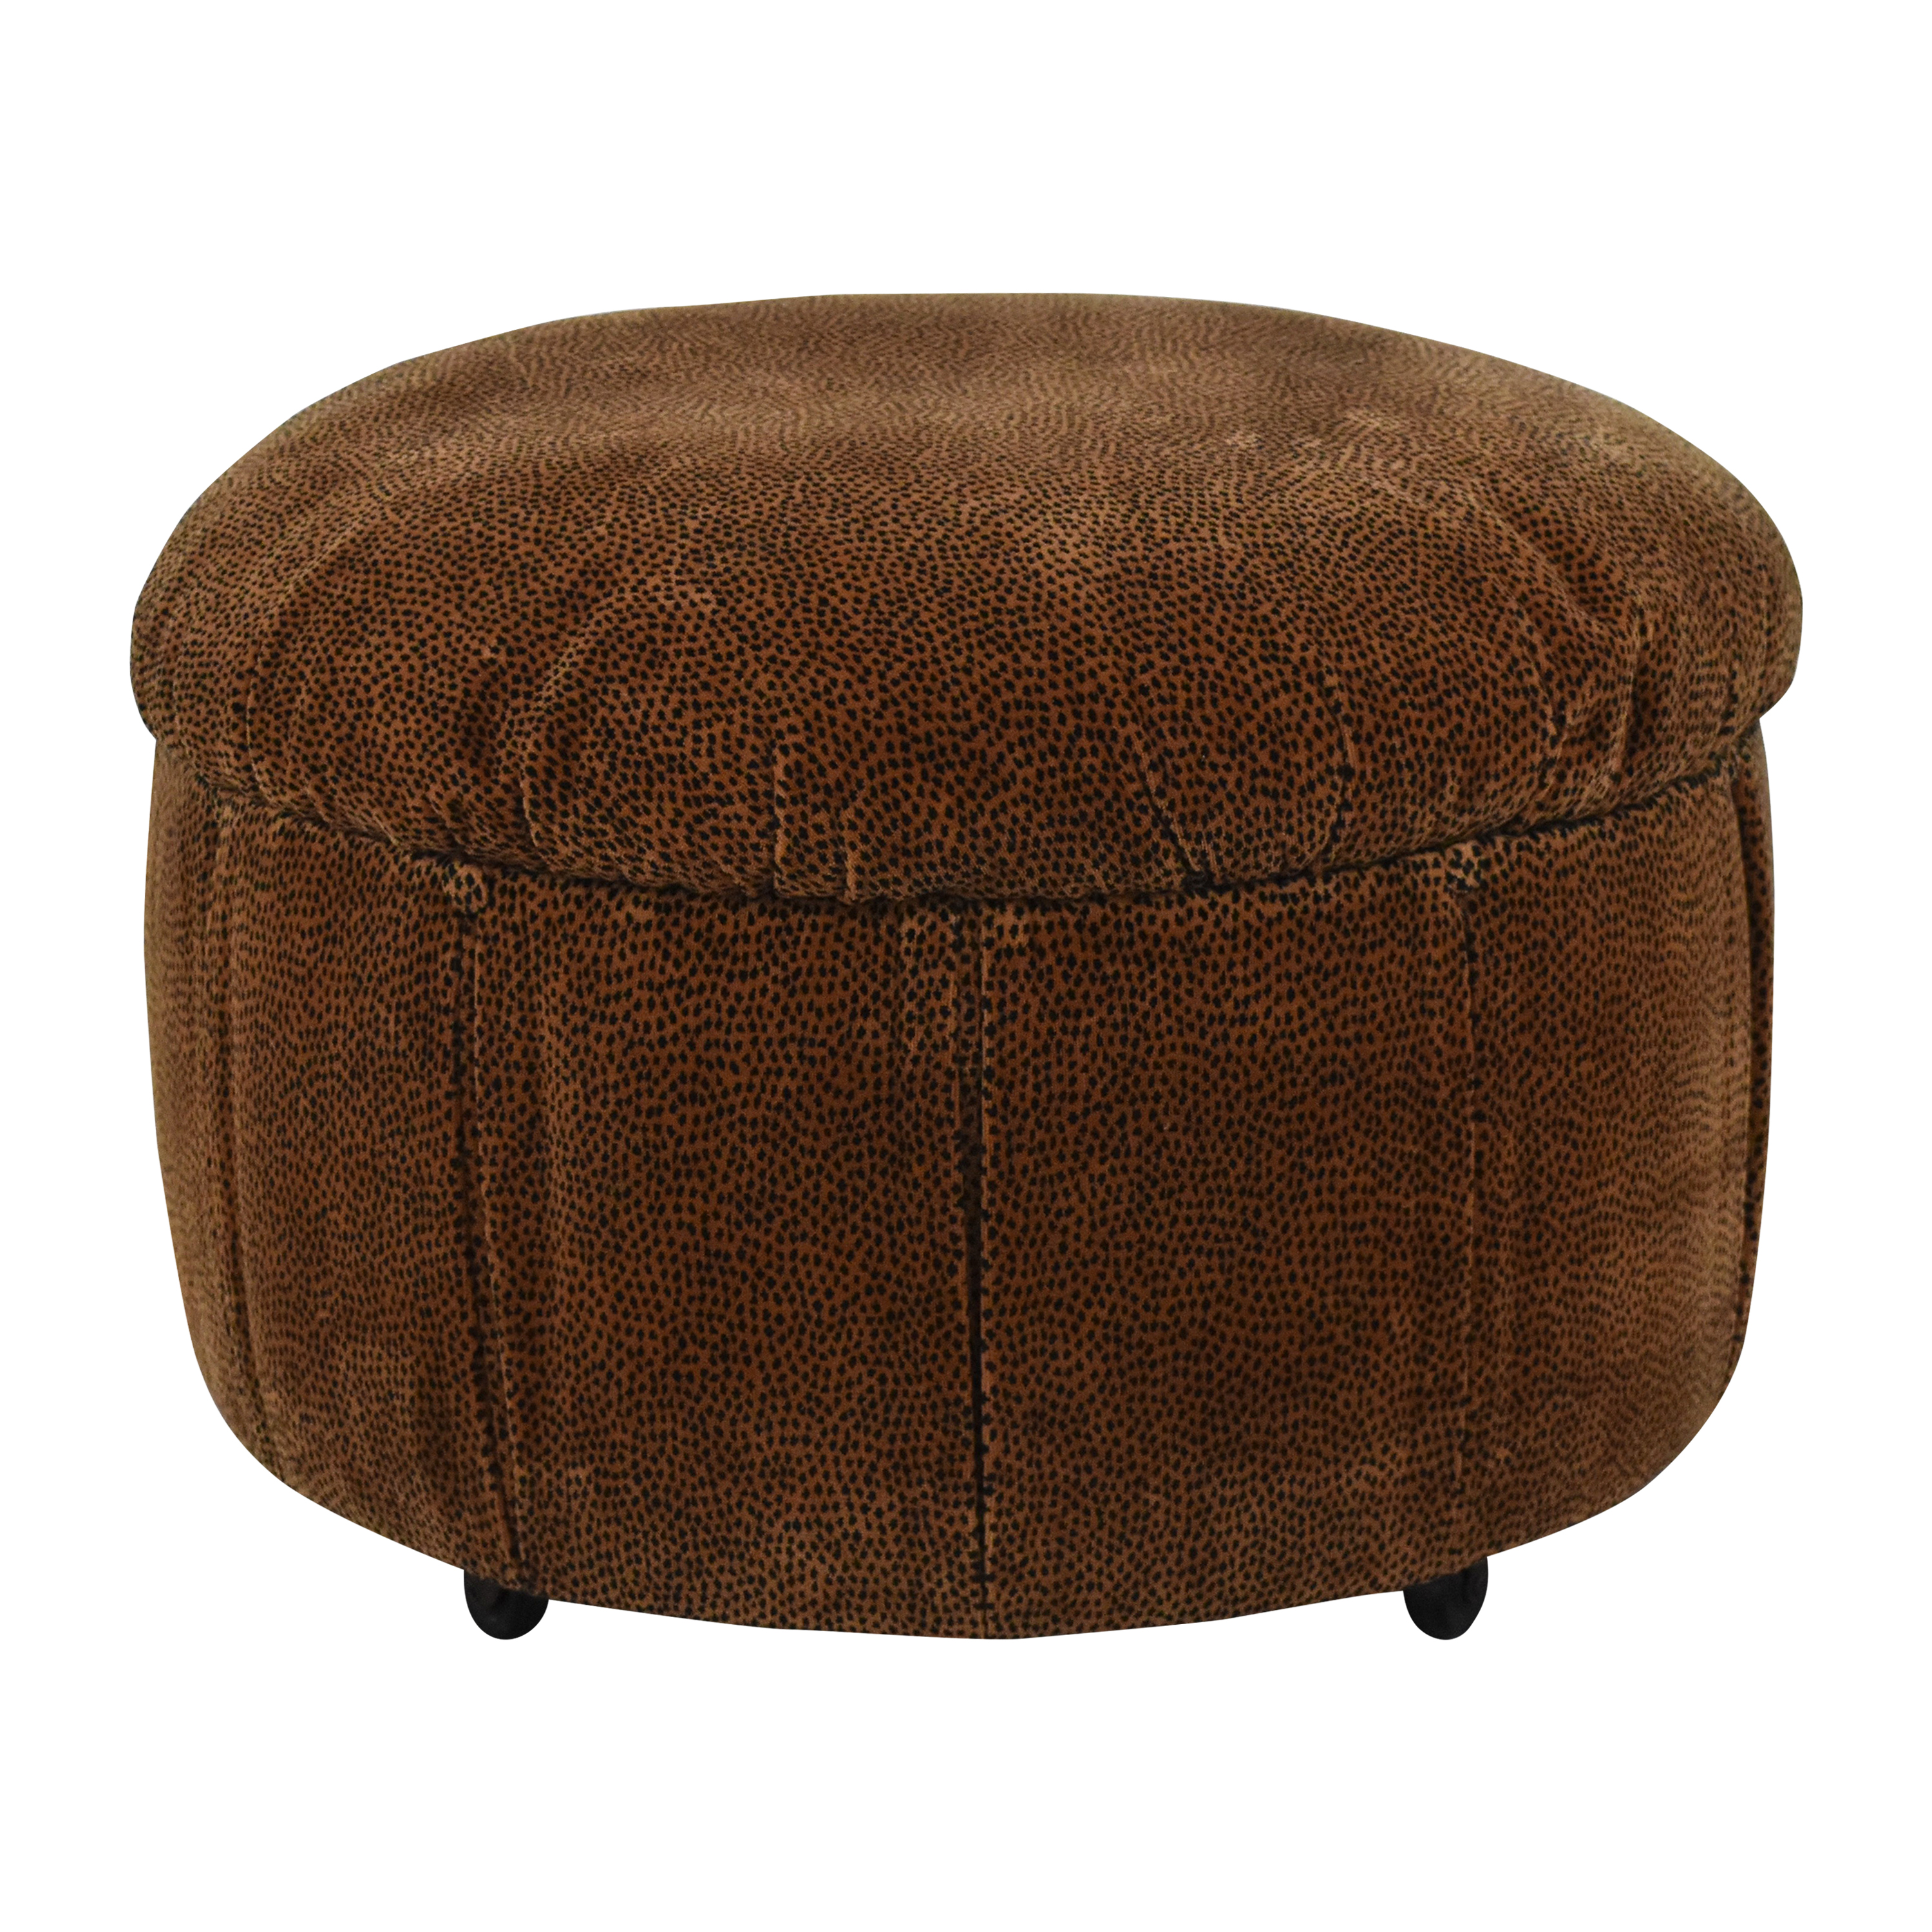 Upholstered Round Ottoman brown